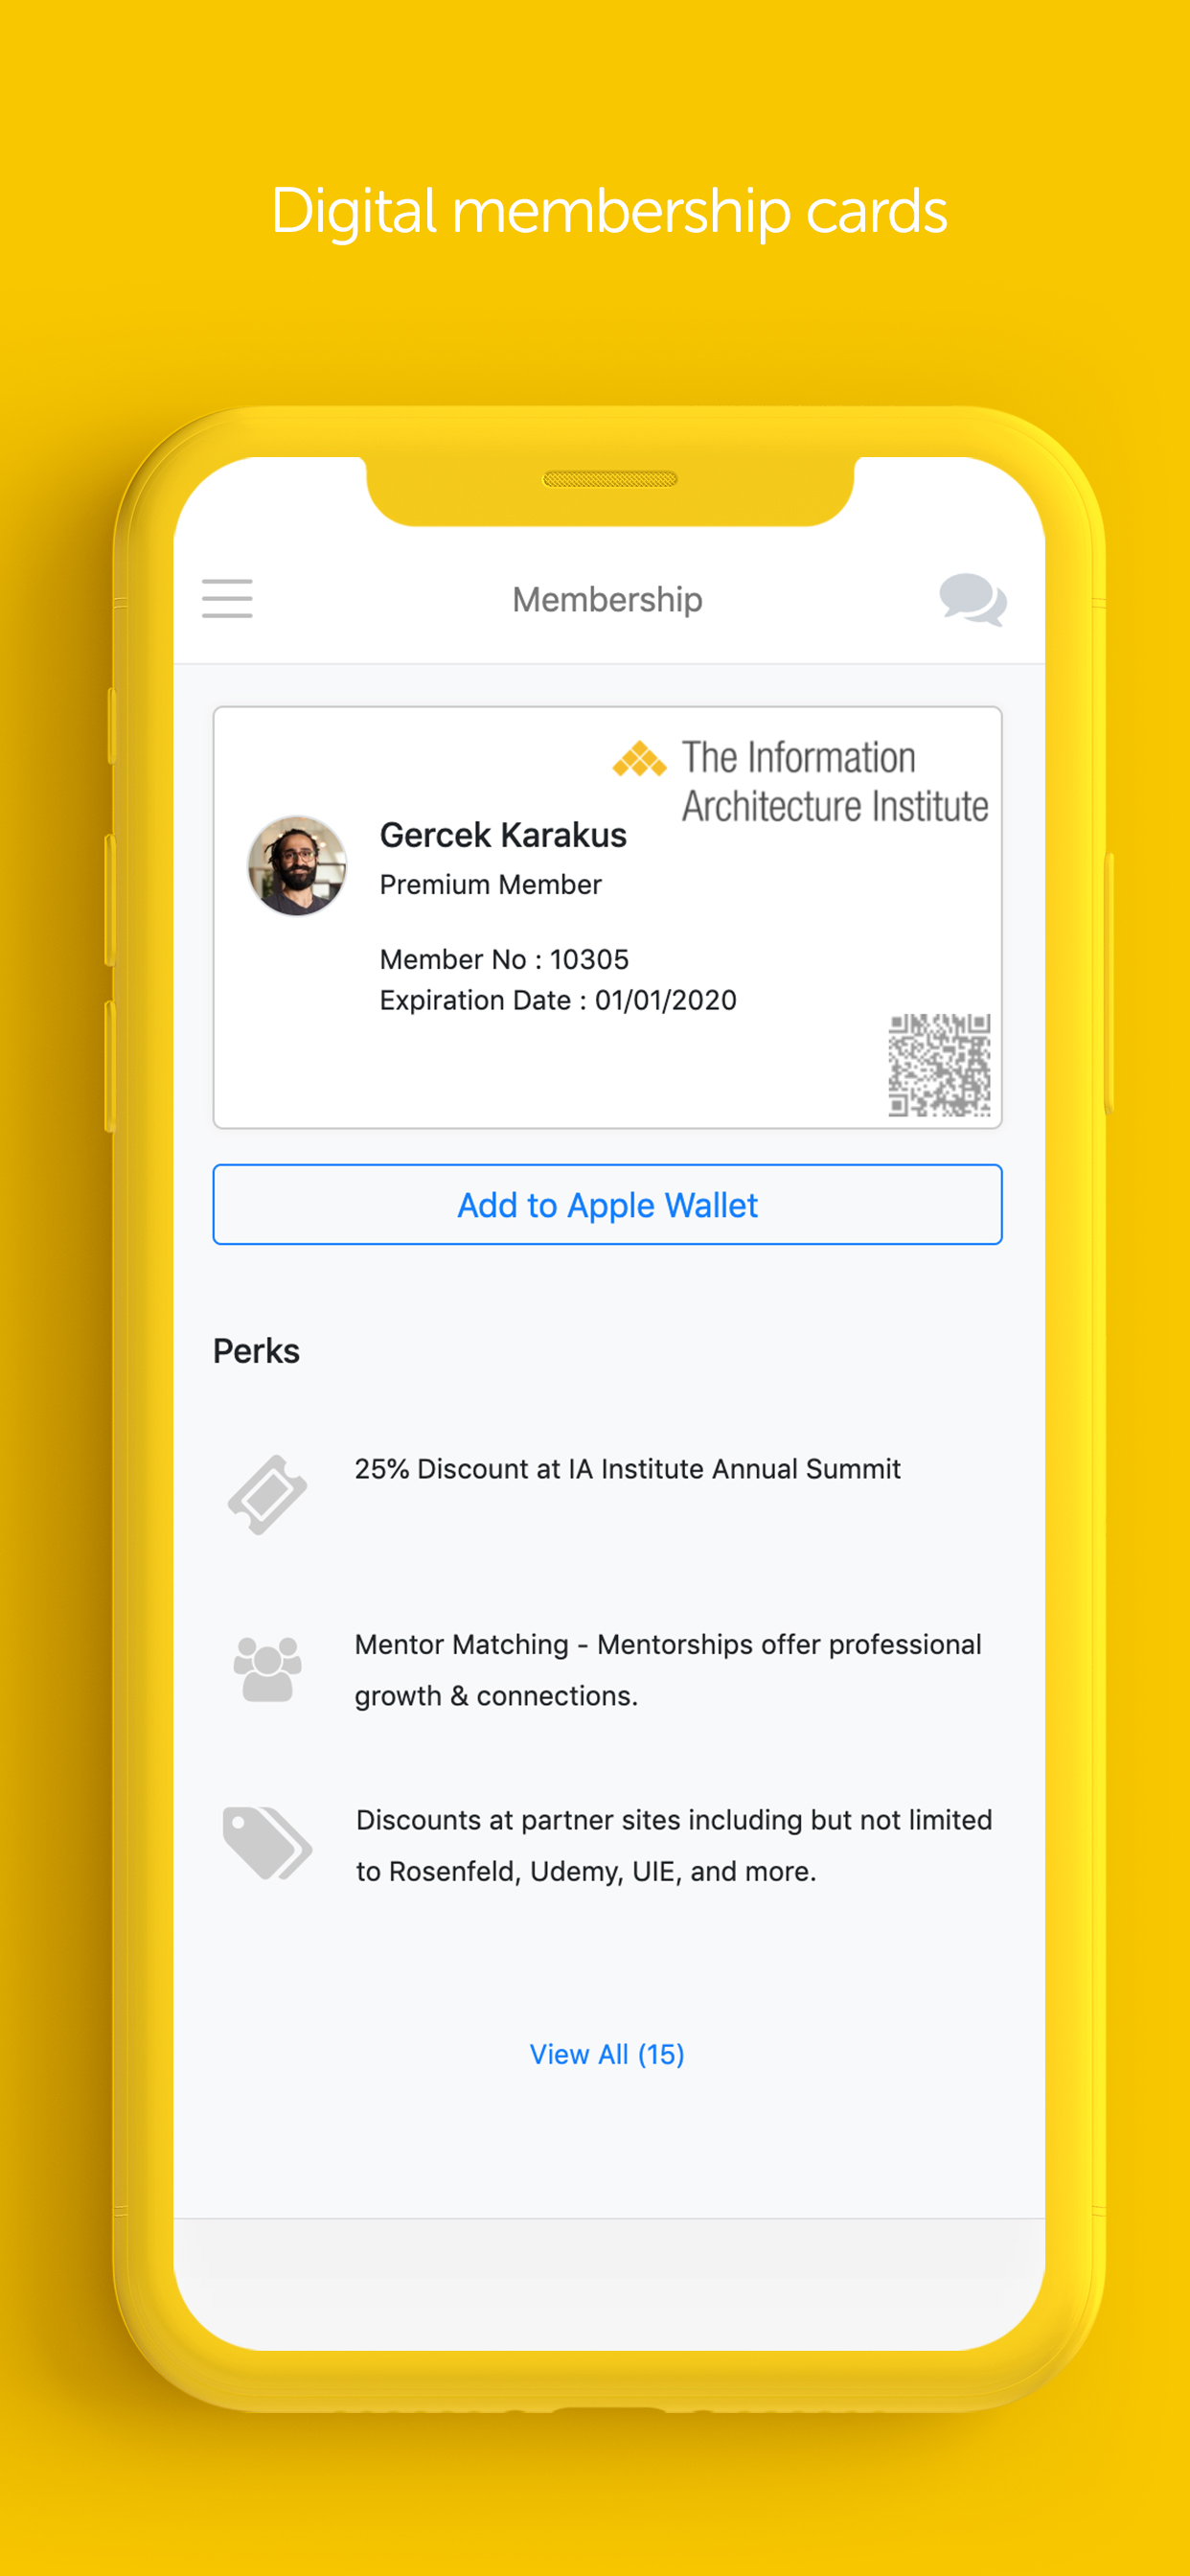 Raklet: Manage digital membership cards via mobile